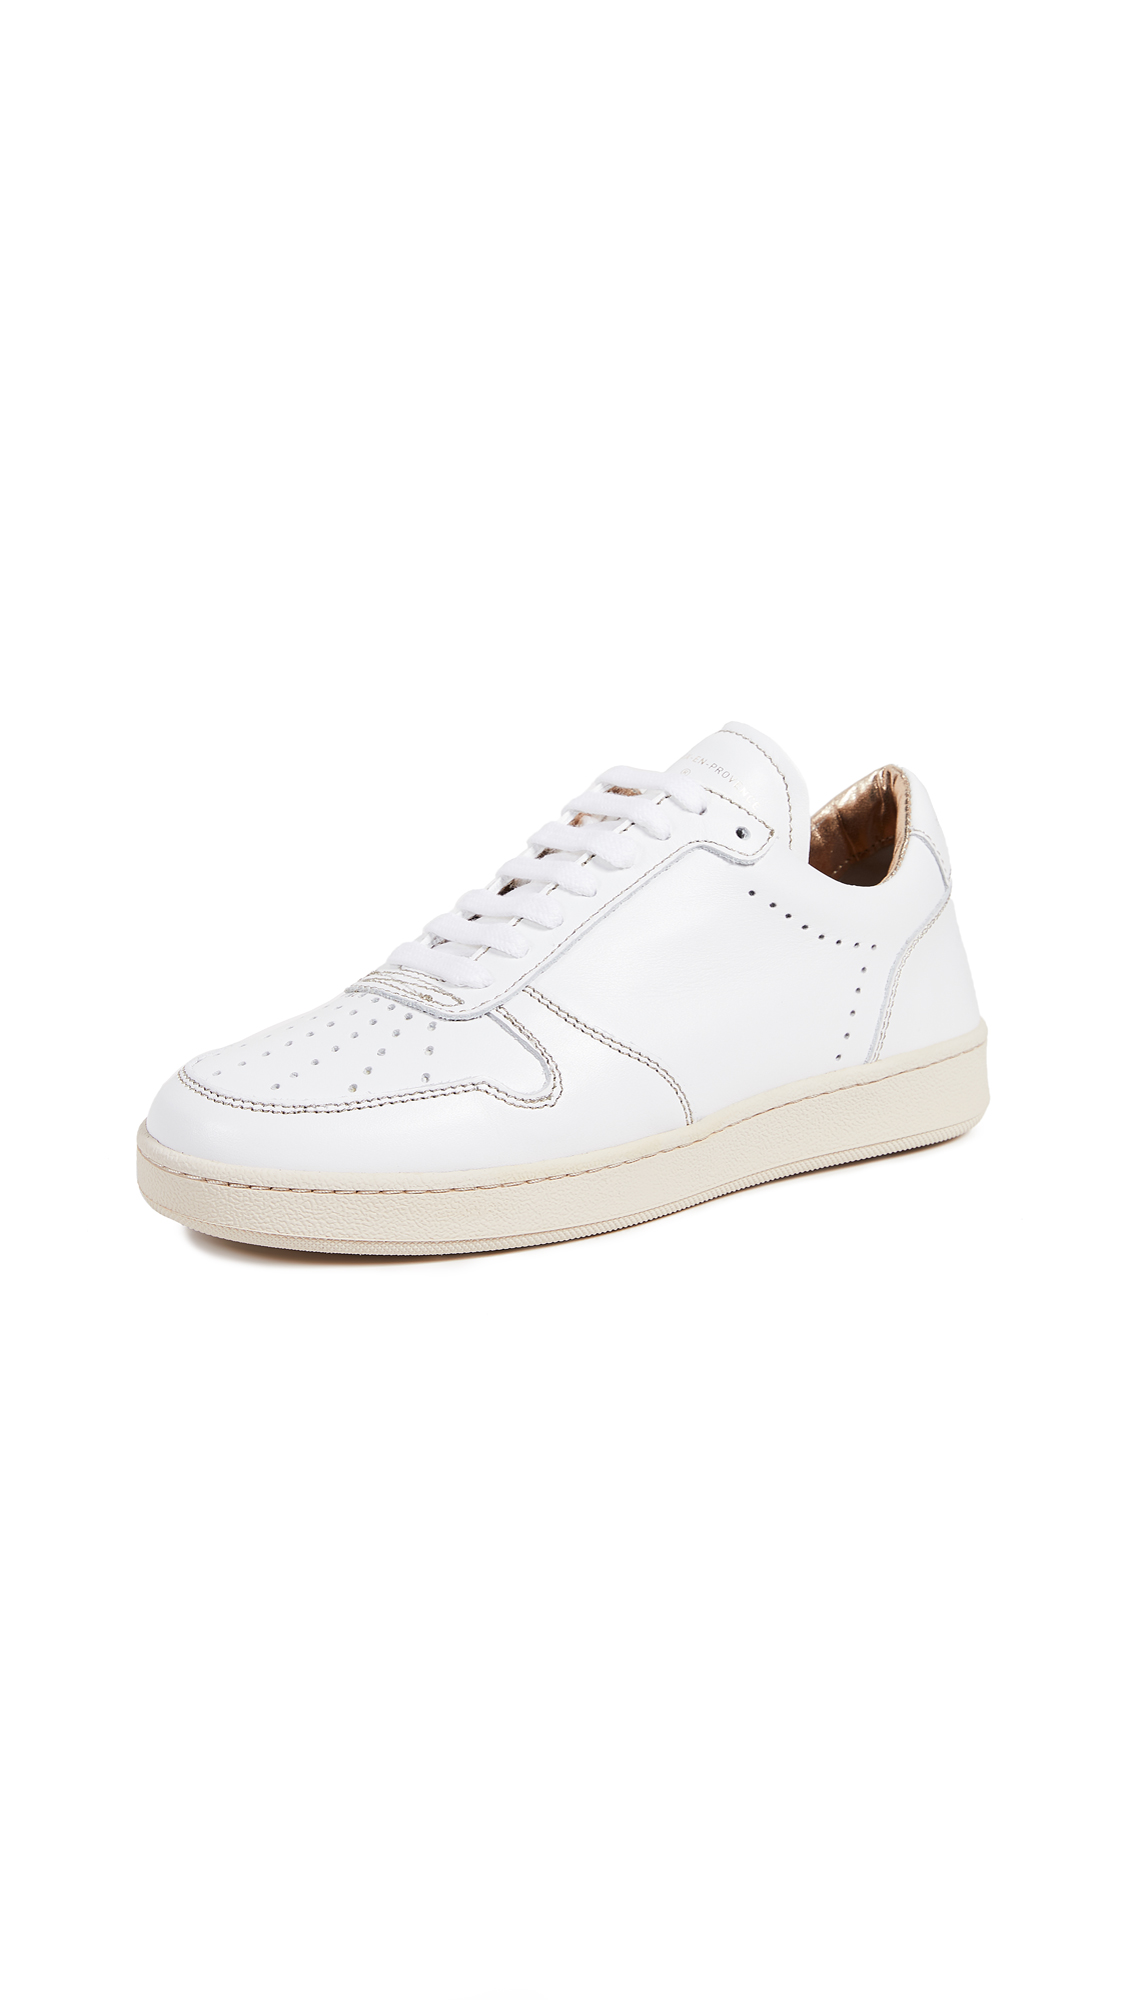 Zespa Nappa Pique Lace Up Sneakers